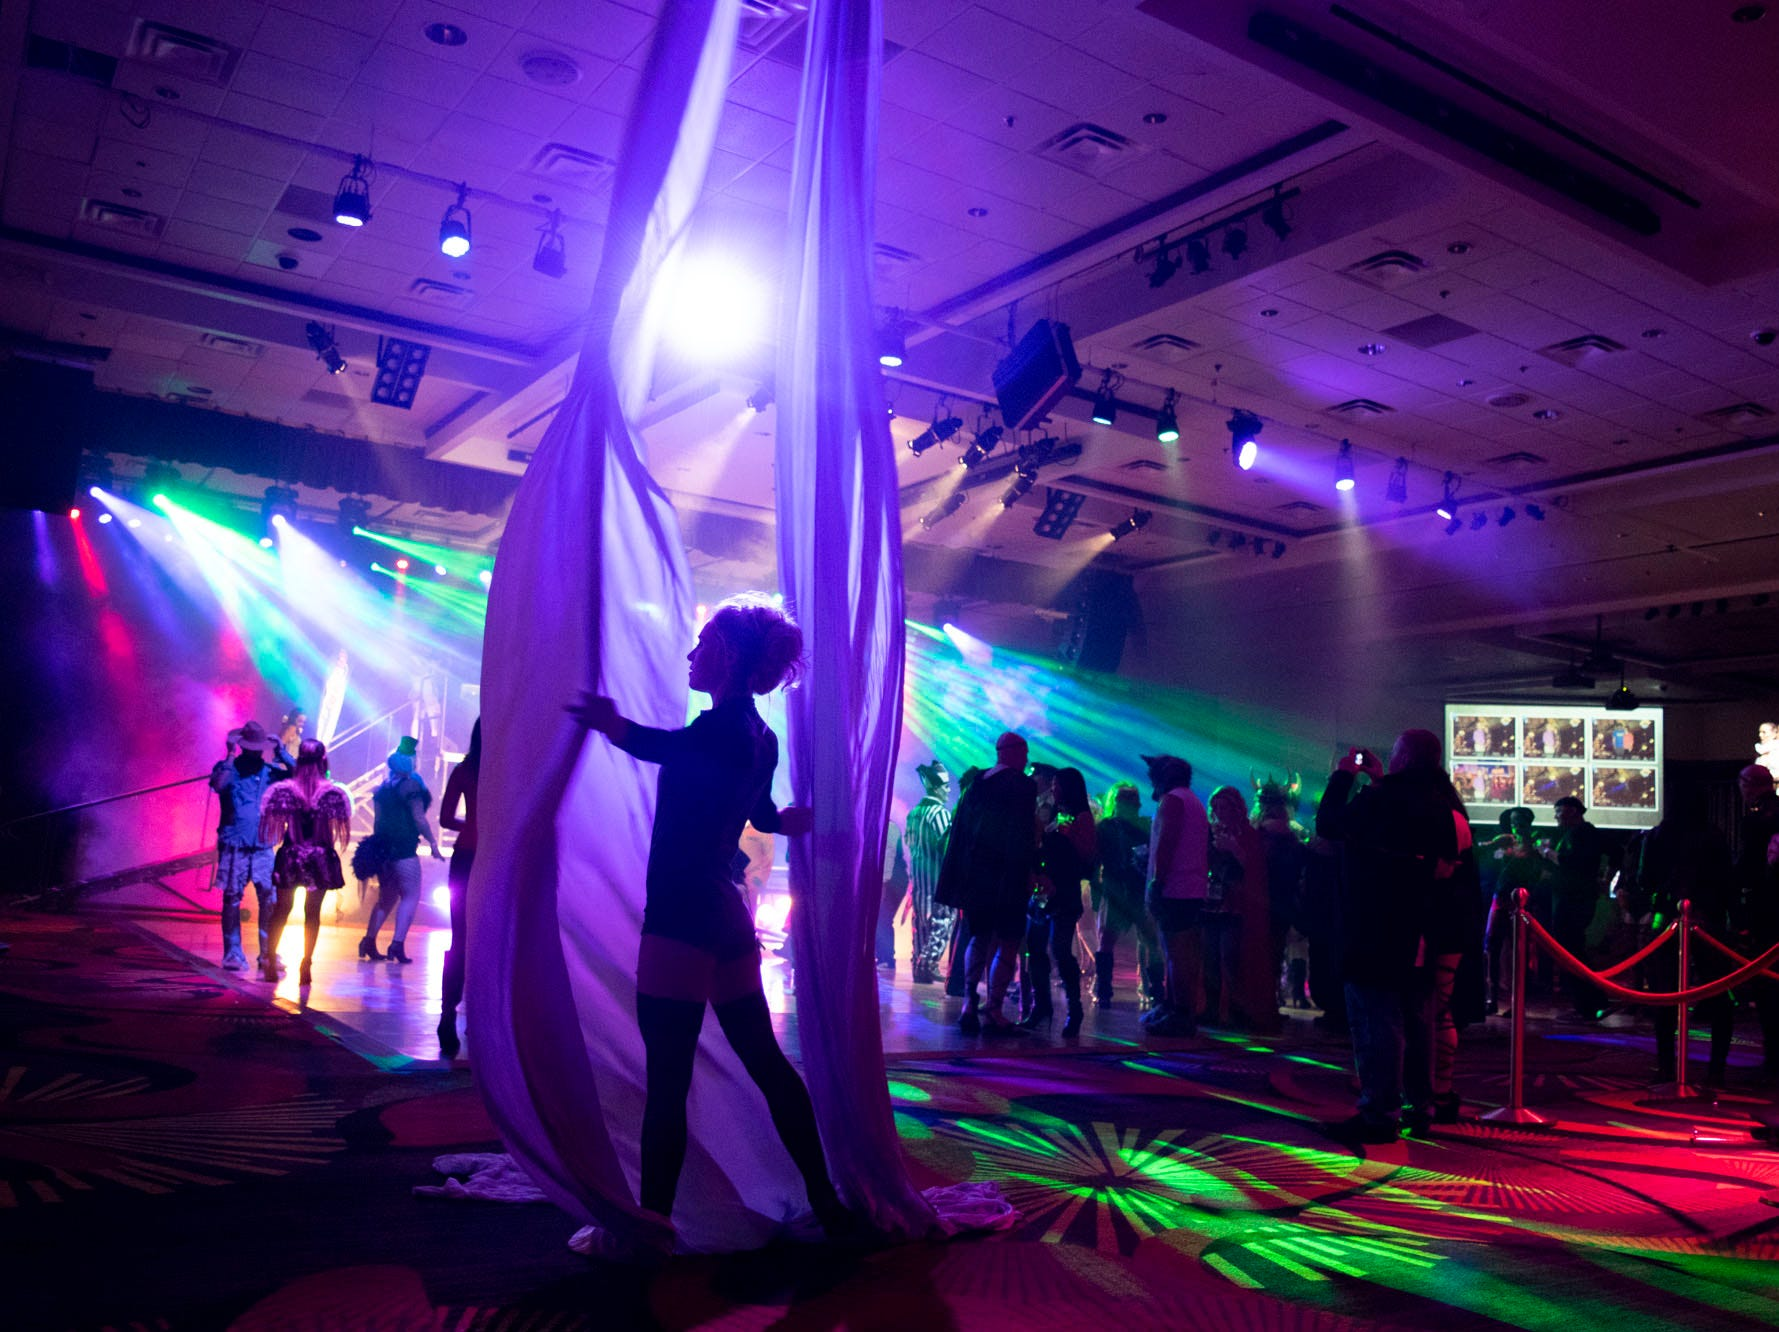 Scenes from the Wild Erotic Ball on Friday, Oct. 26, 2018, inside the Silver Legacy Casino. Reno, Nev.